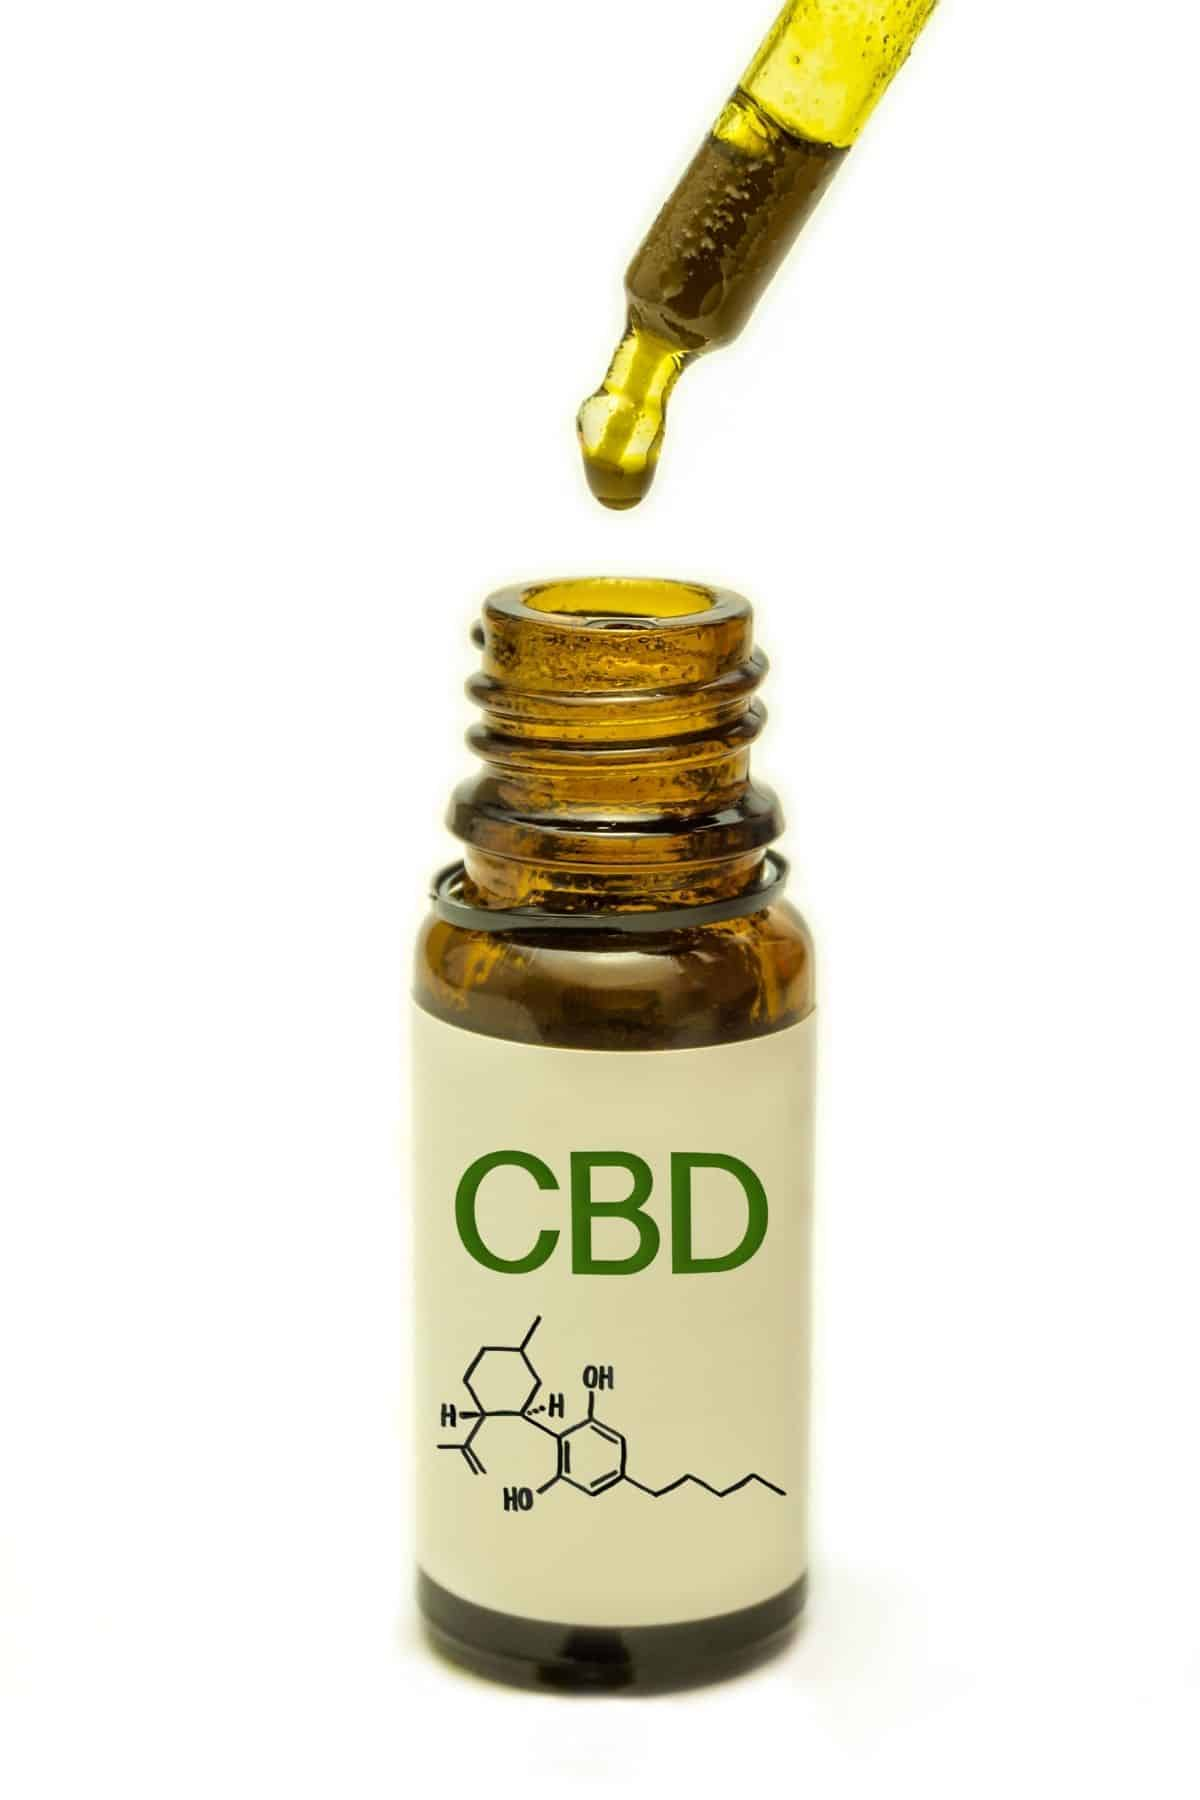 bottle of CBD oil with a dropper